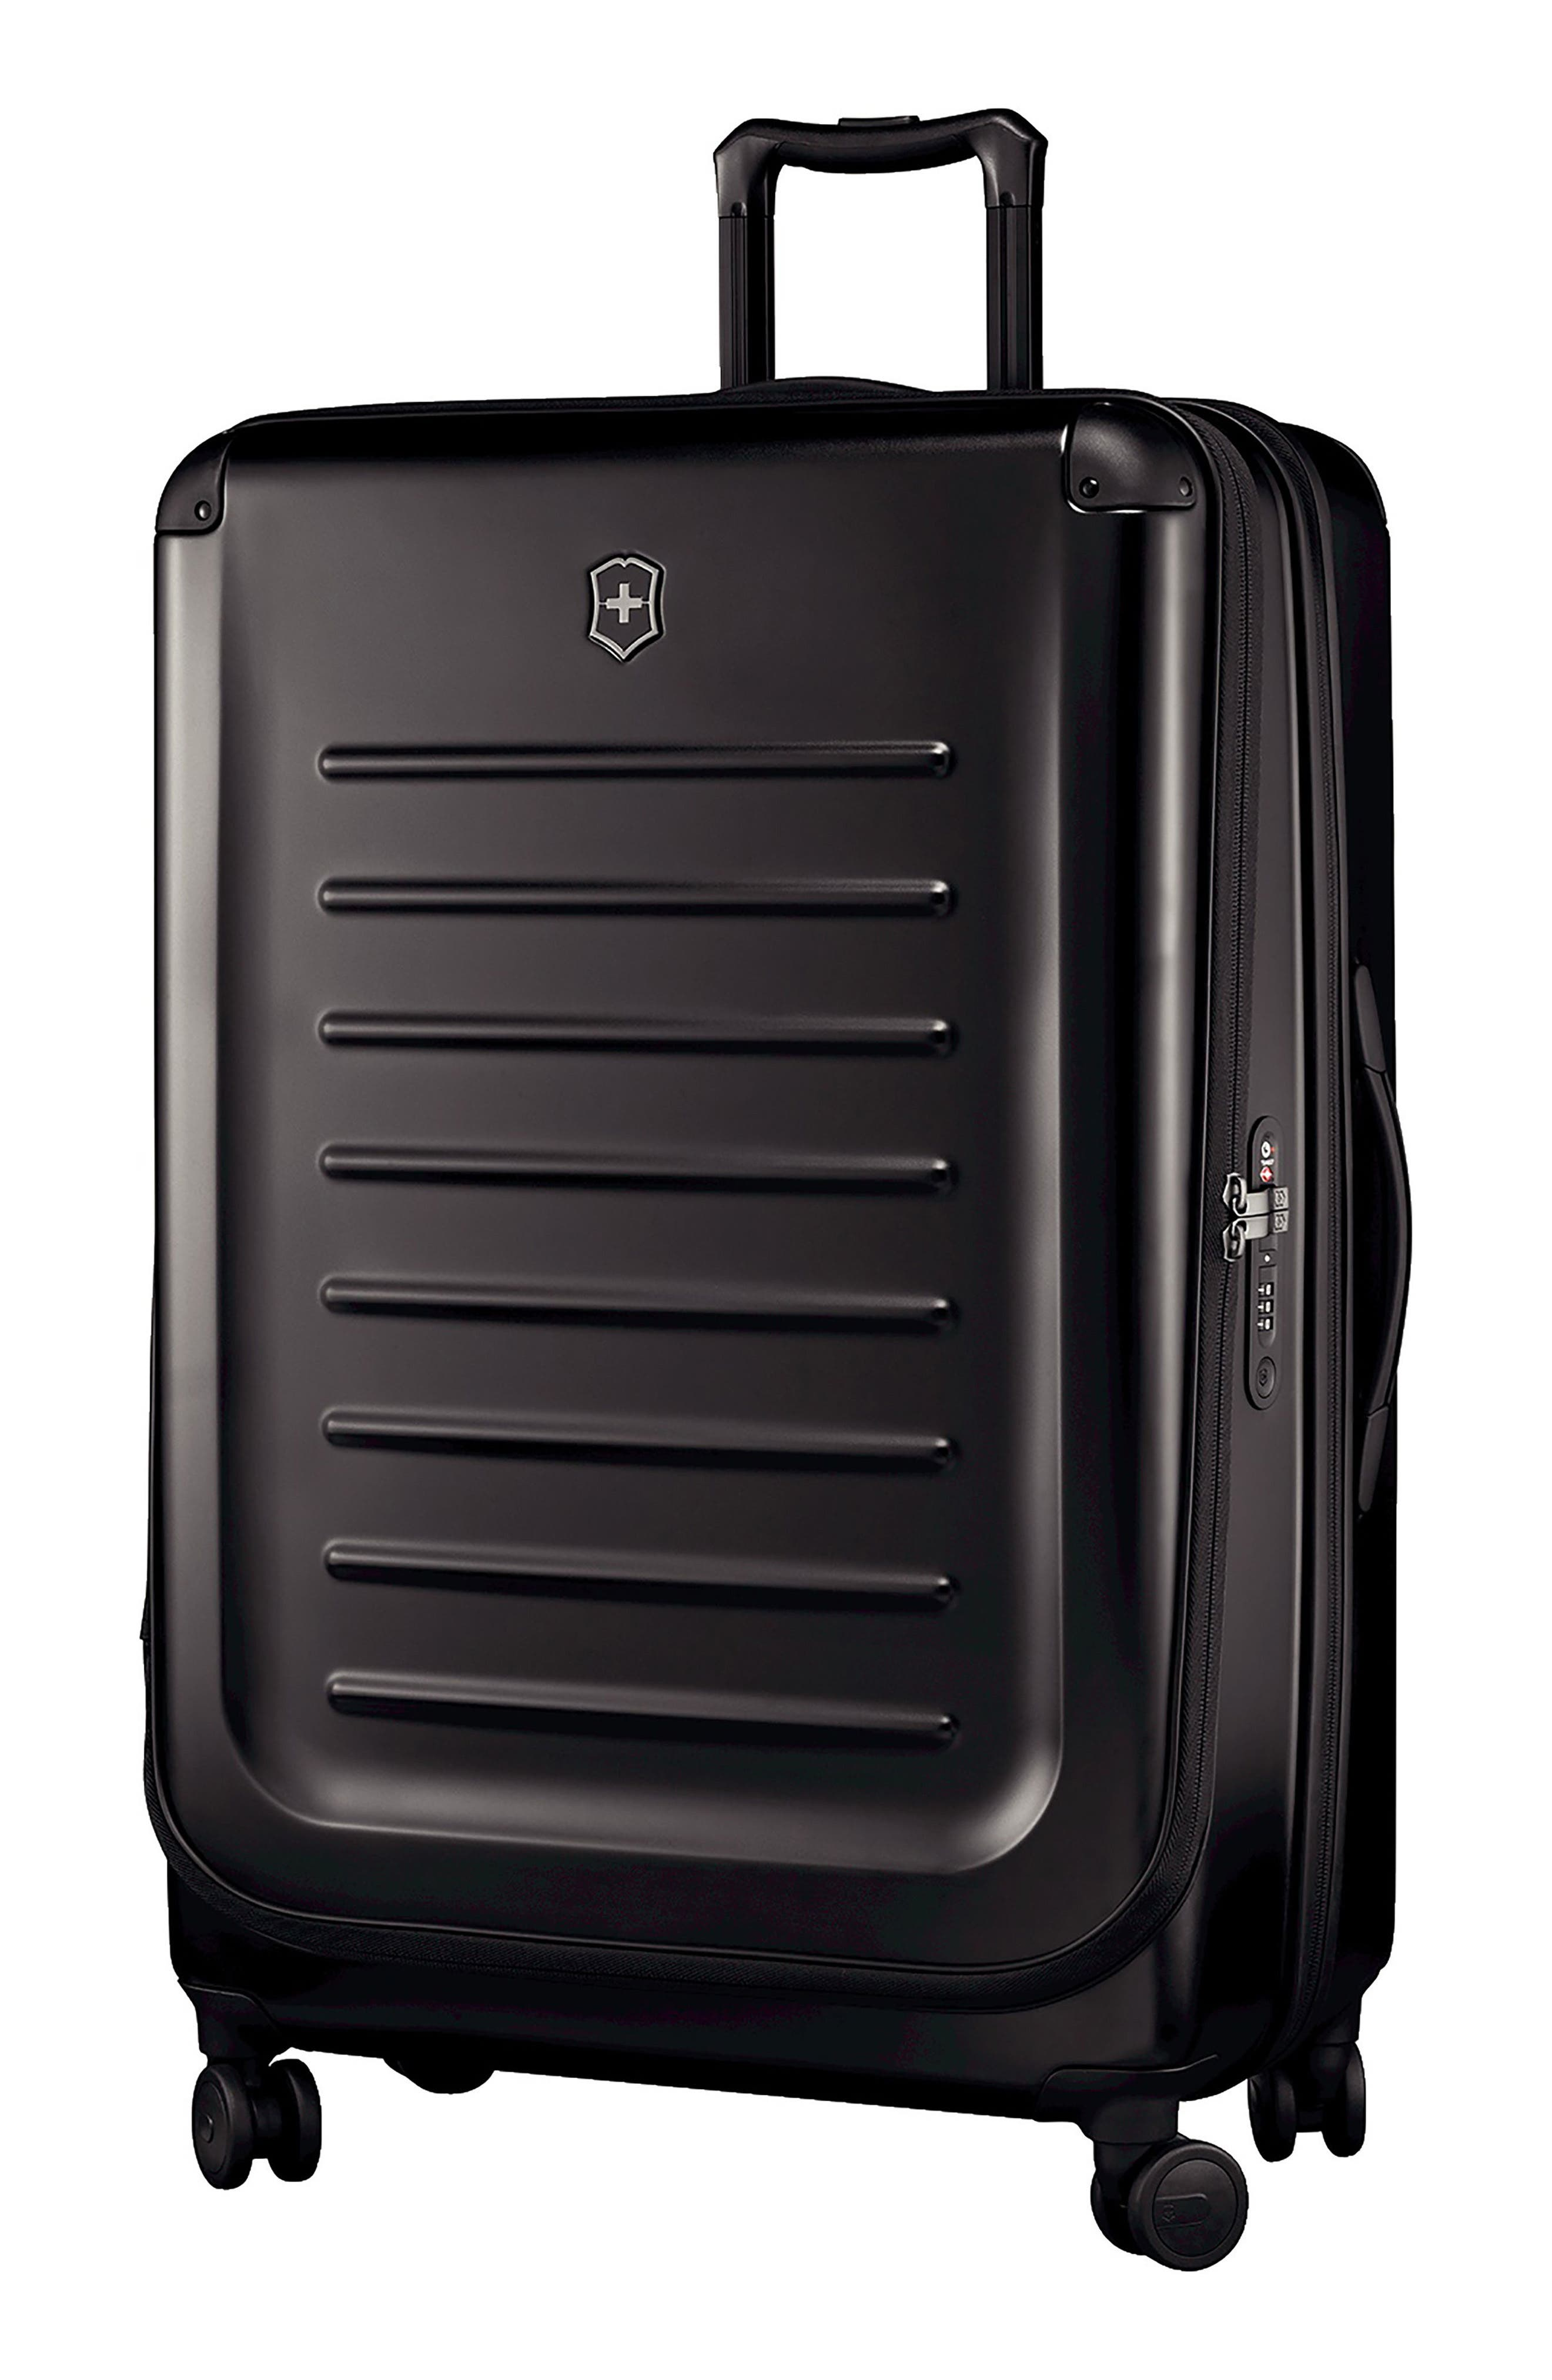 Spectra 2.0 32 Inch Hard Sided Rolling Travel Suitcase,                             Main thumbnail 1, color,